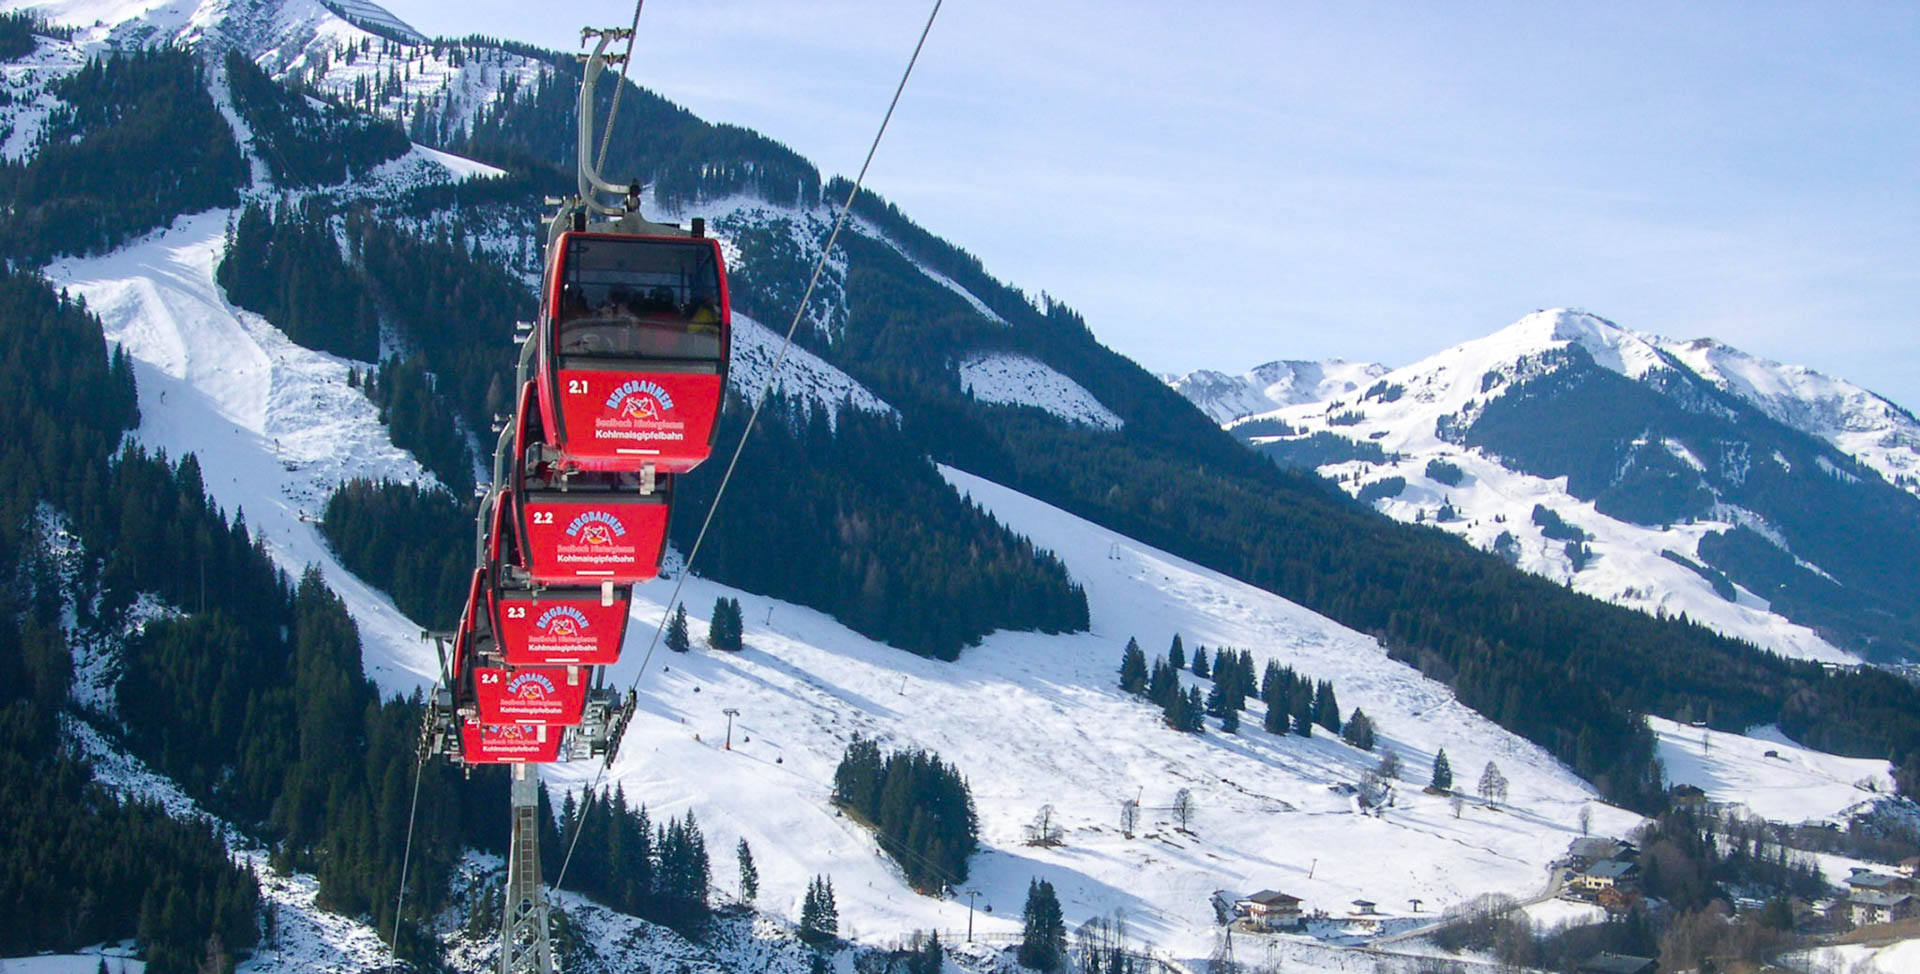 The bright red gondolas of the Kohlmais Group Lift rise above the slopes and towards the mountain peaks of Saalbach-Hinterglemm ski area